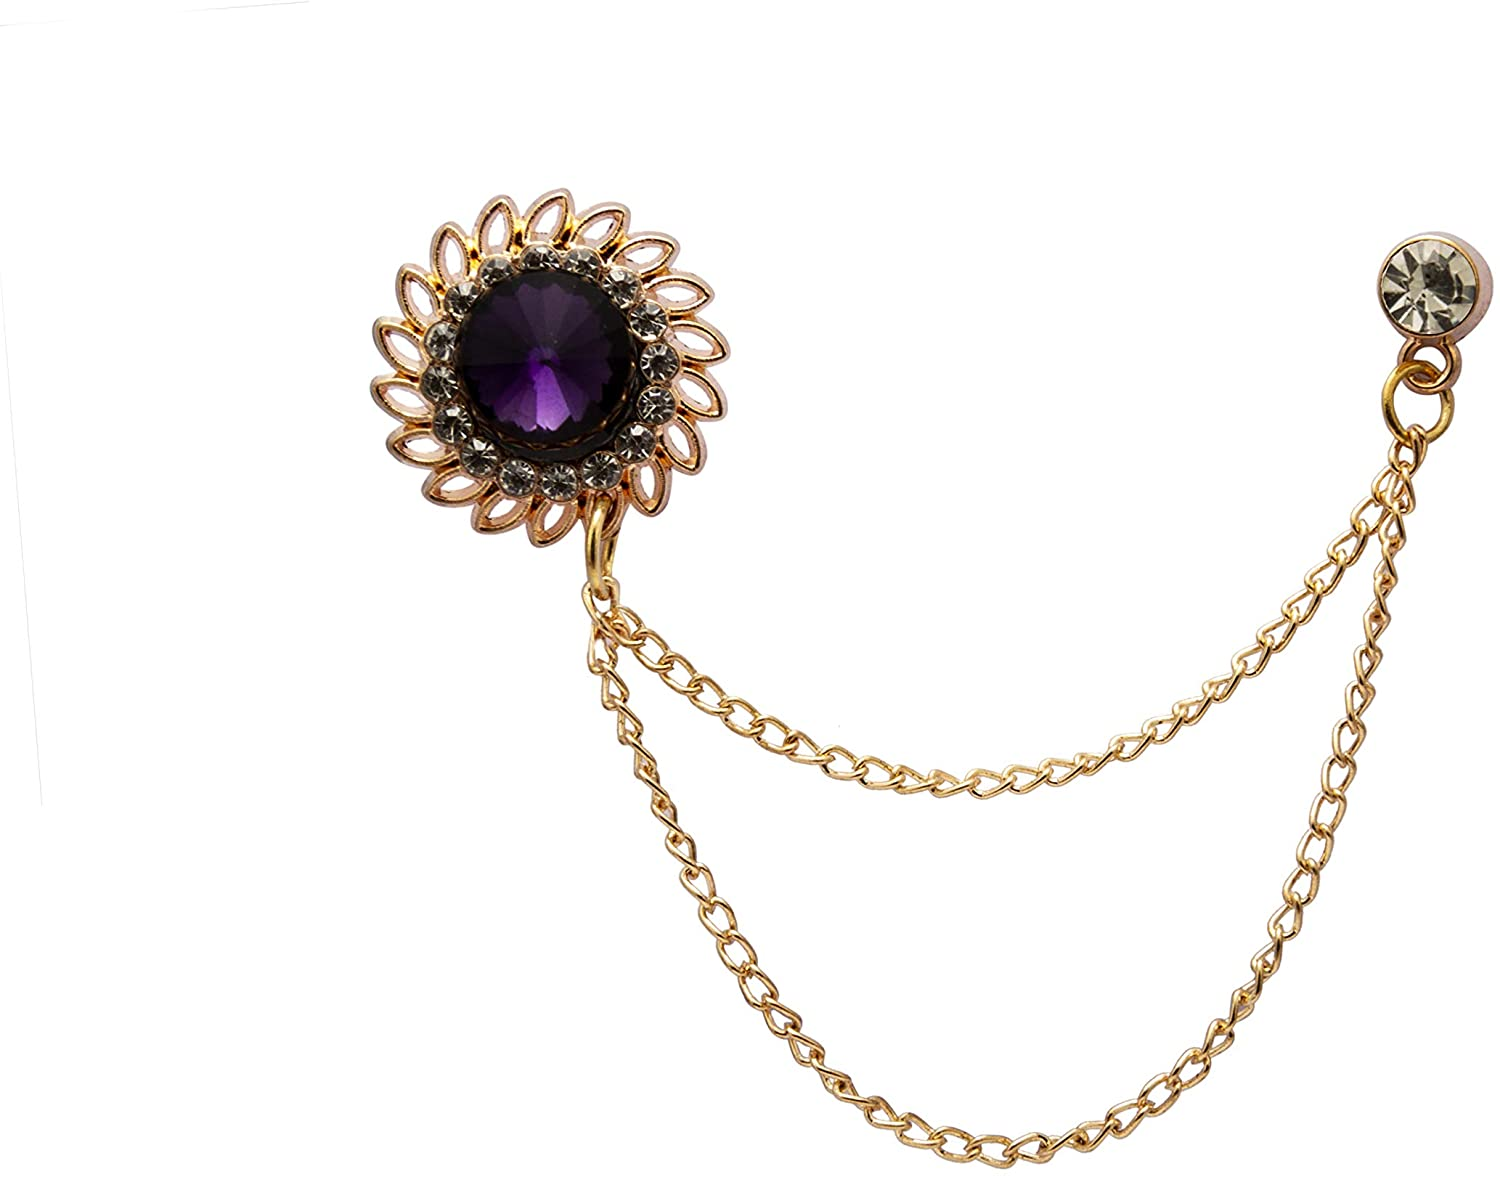 AN KINGPiiN Lapel Pin for Men Stone with Crystal Engraving and Hanging Chain Brooch Suit Stud, Shirt Studs Men's Accessories (Purple)